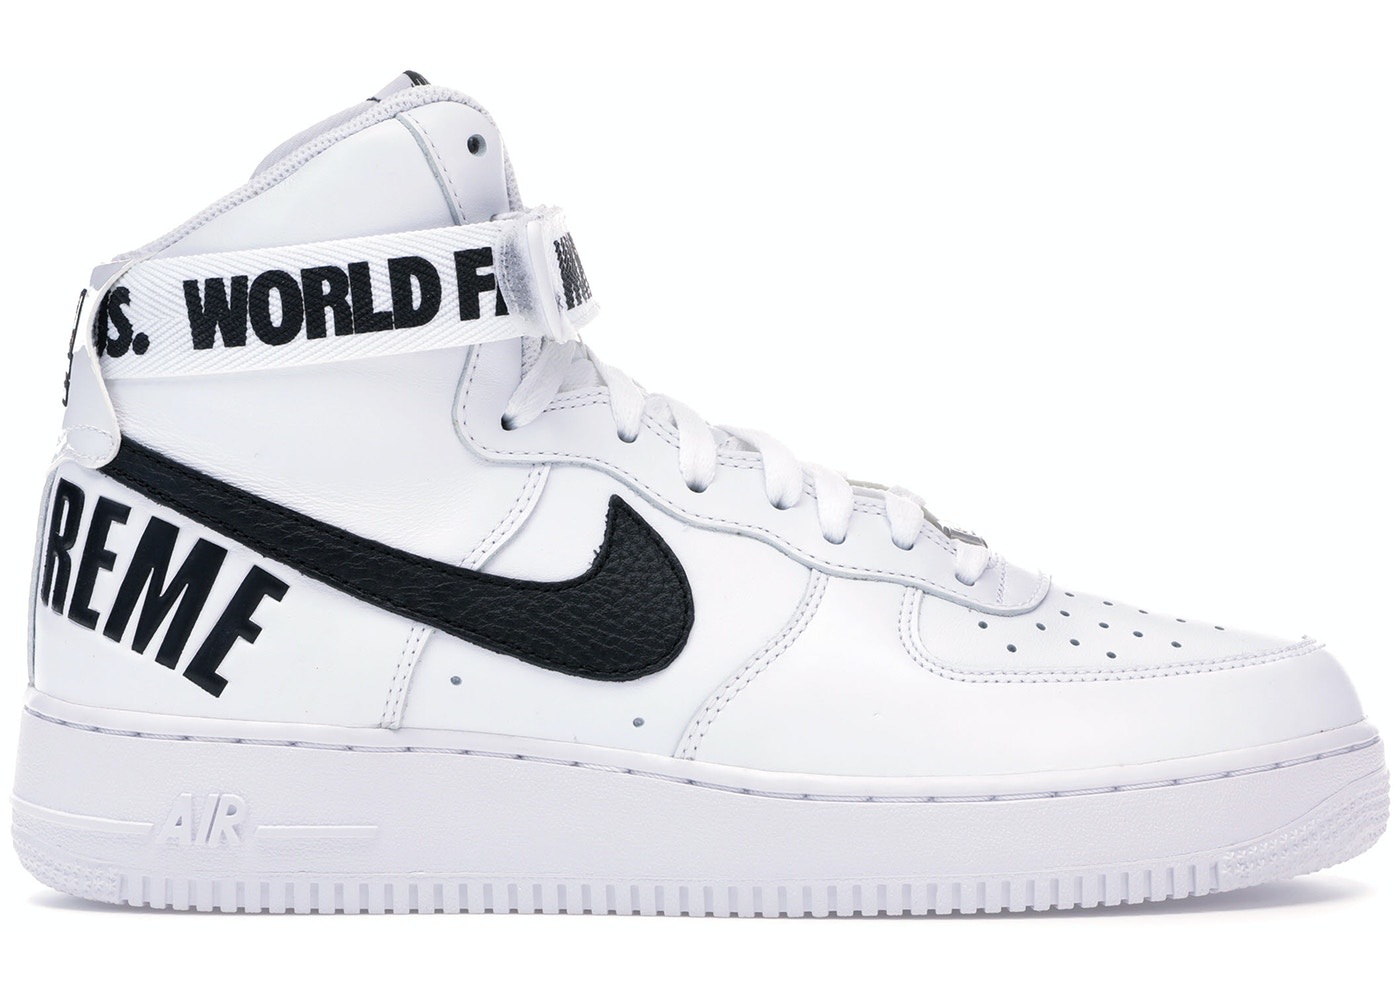 pick up 04c33 082e7 Air Force 1 High Supreme World Famous White